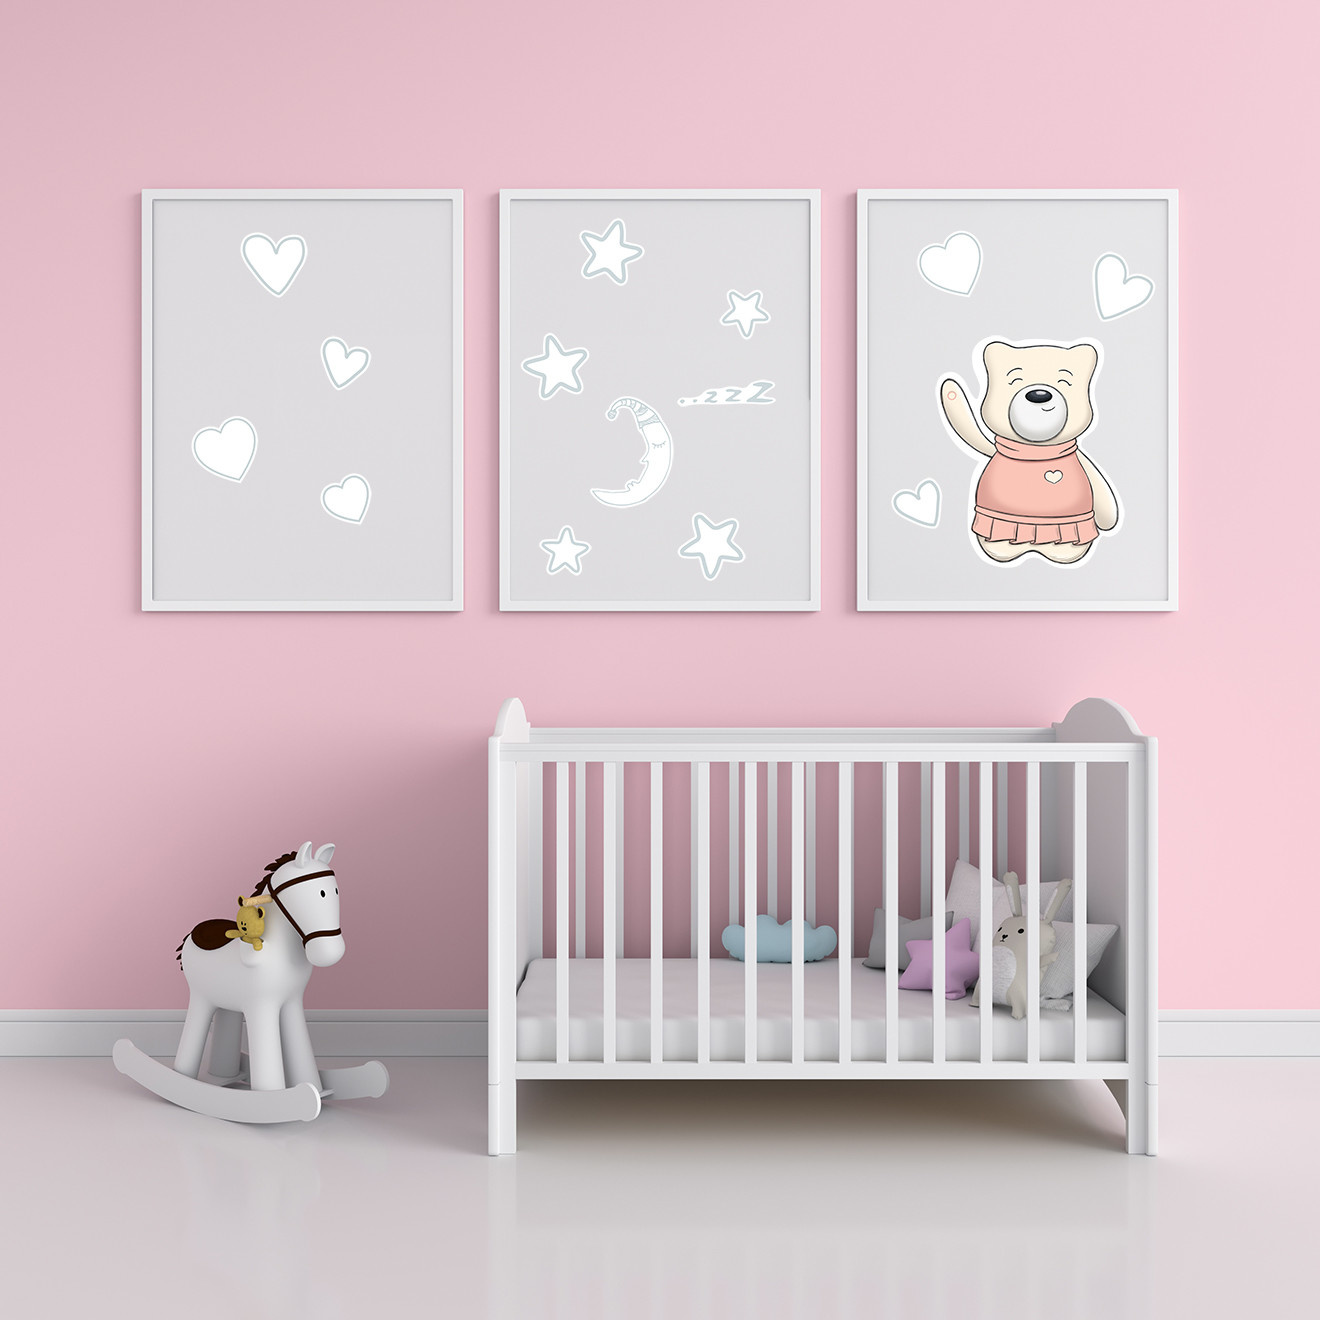 myHummy myHummy Nursery Wall Stickers